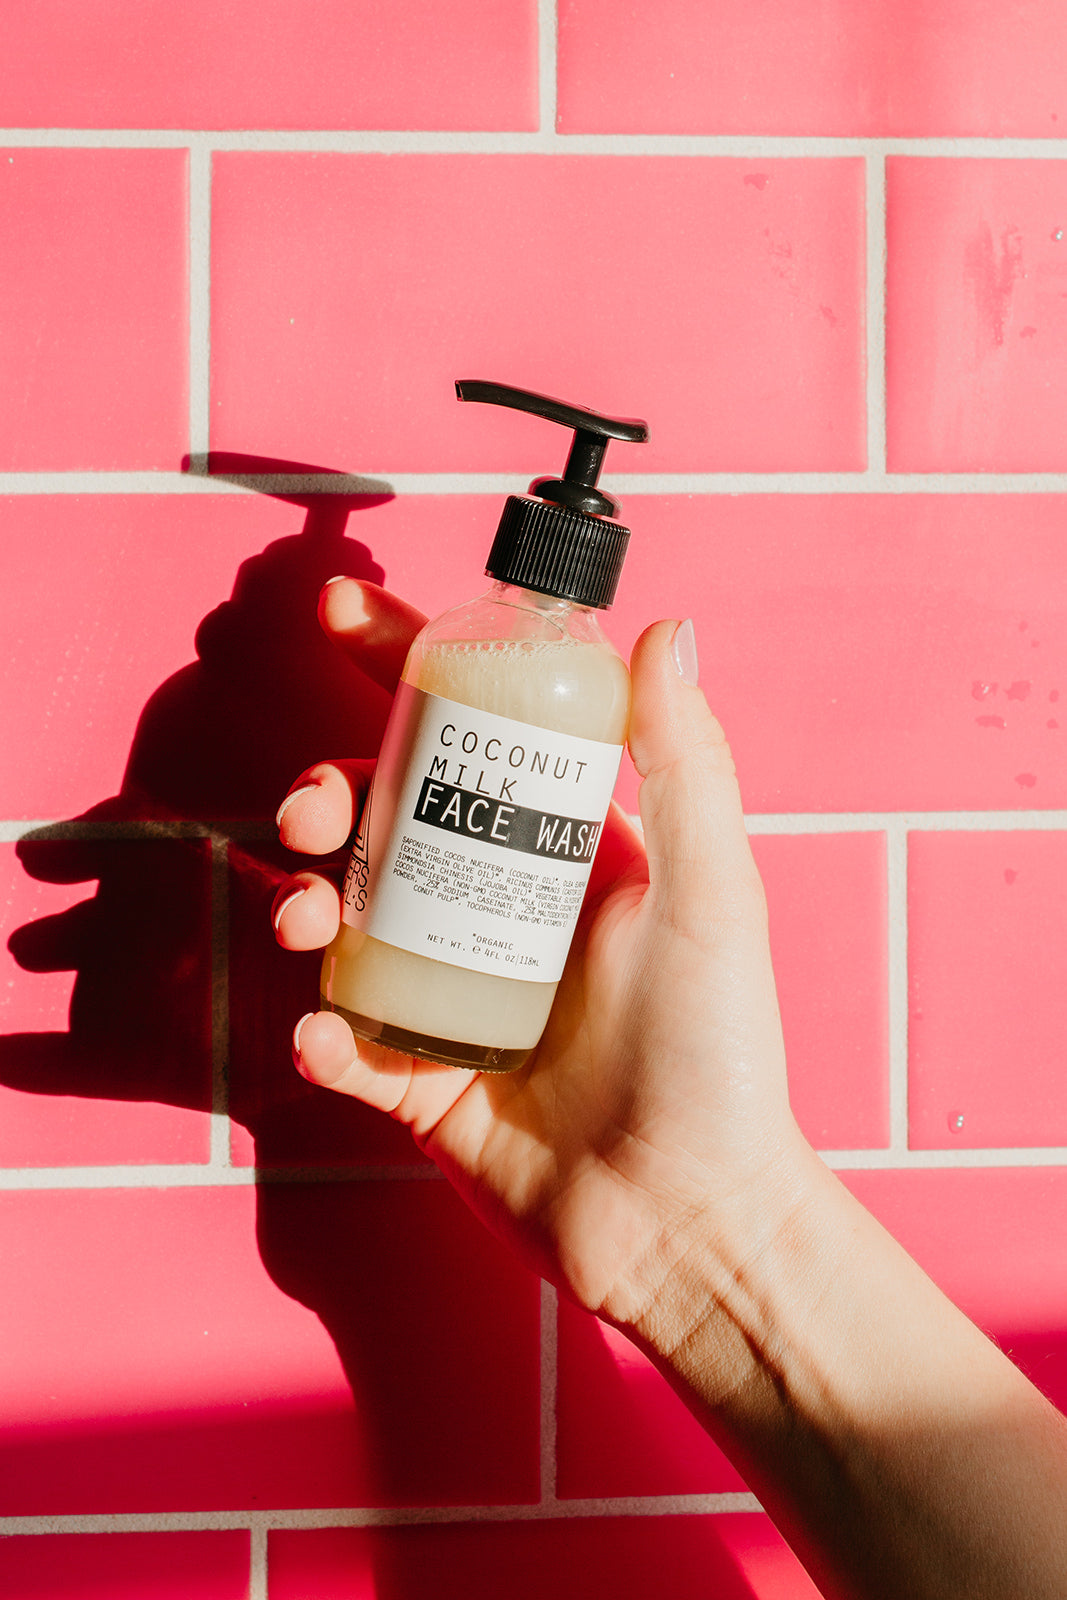 Pink Tile, Coconut Face Wash